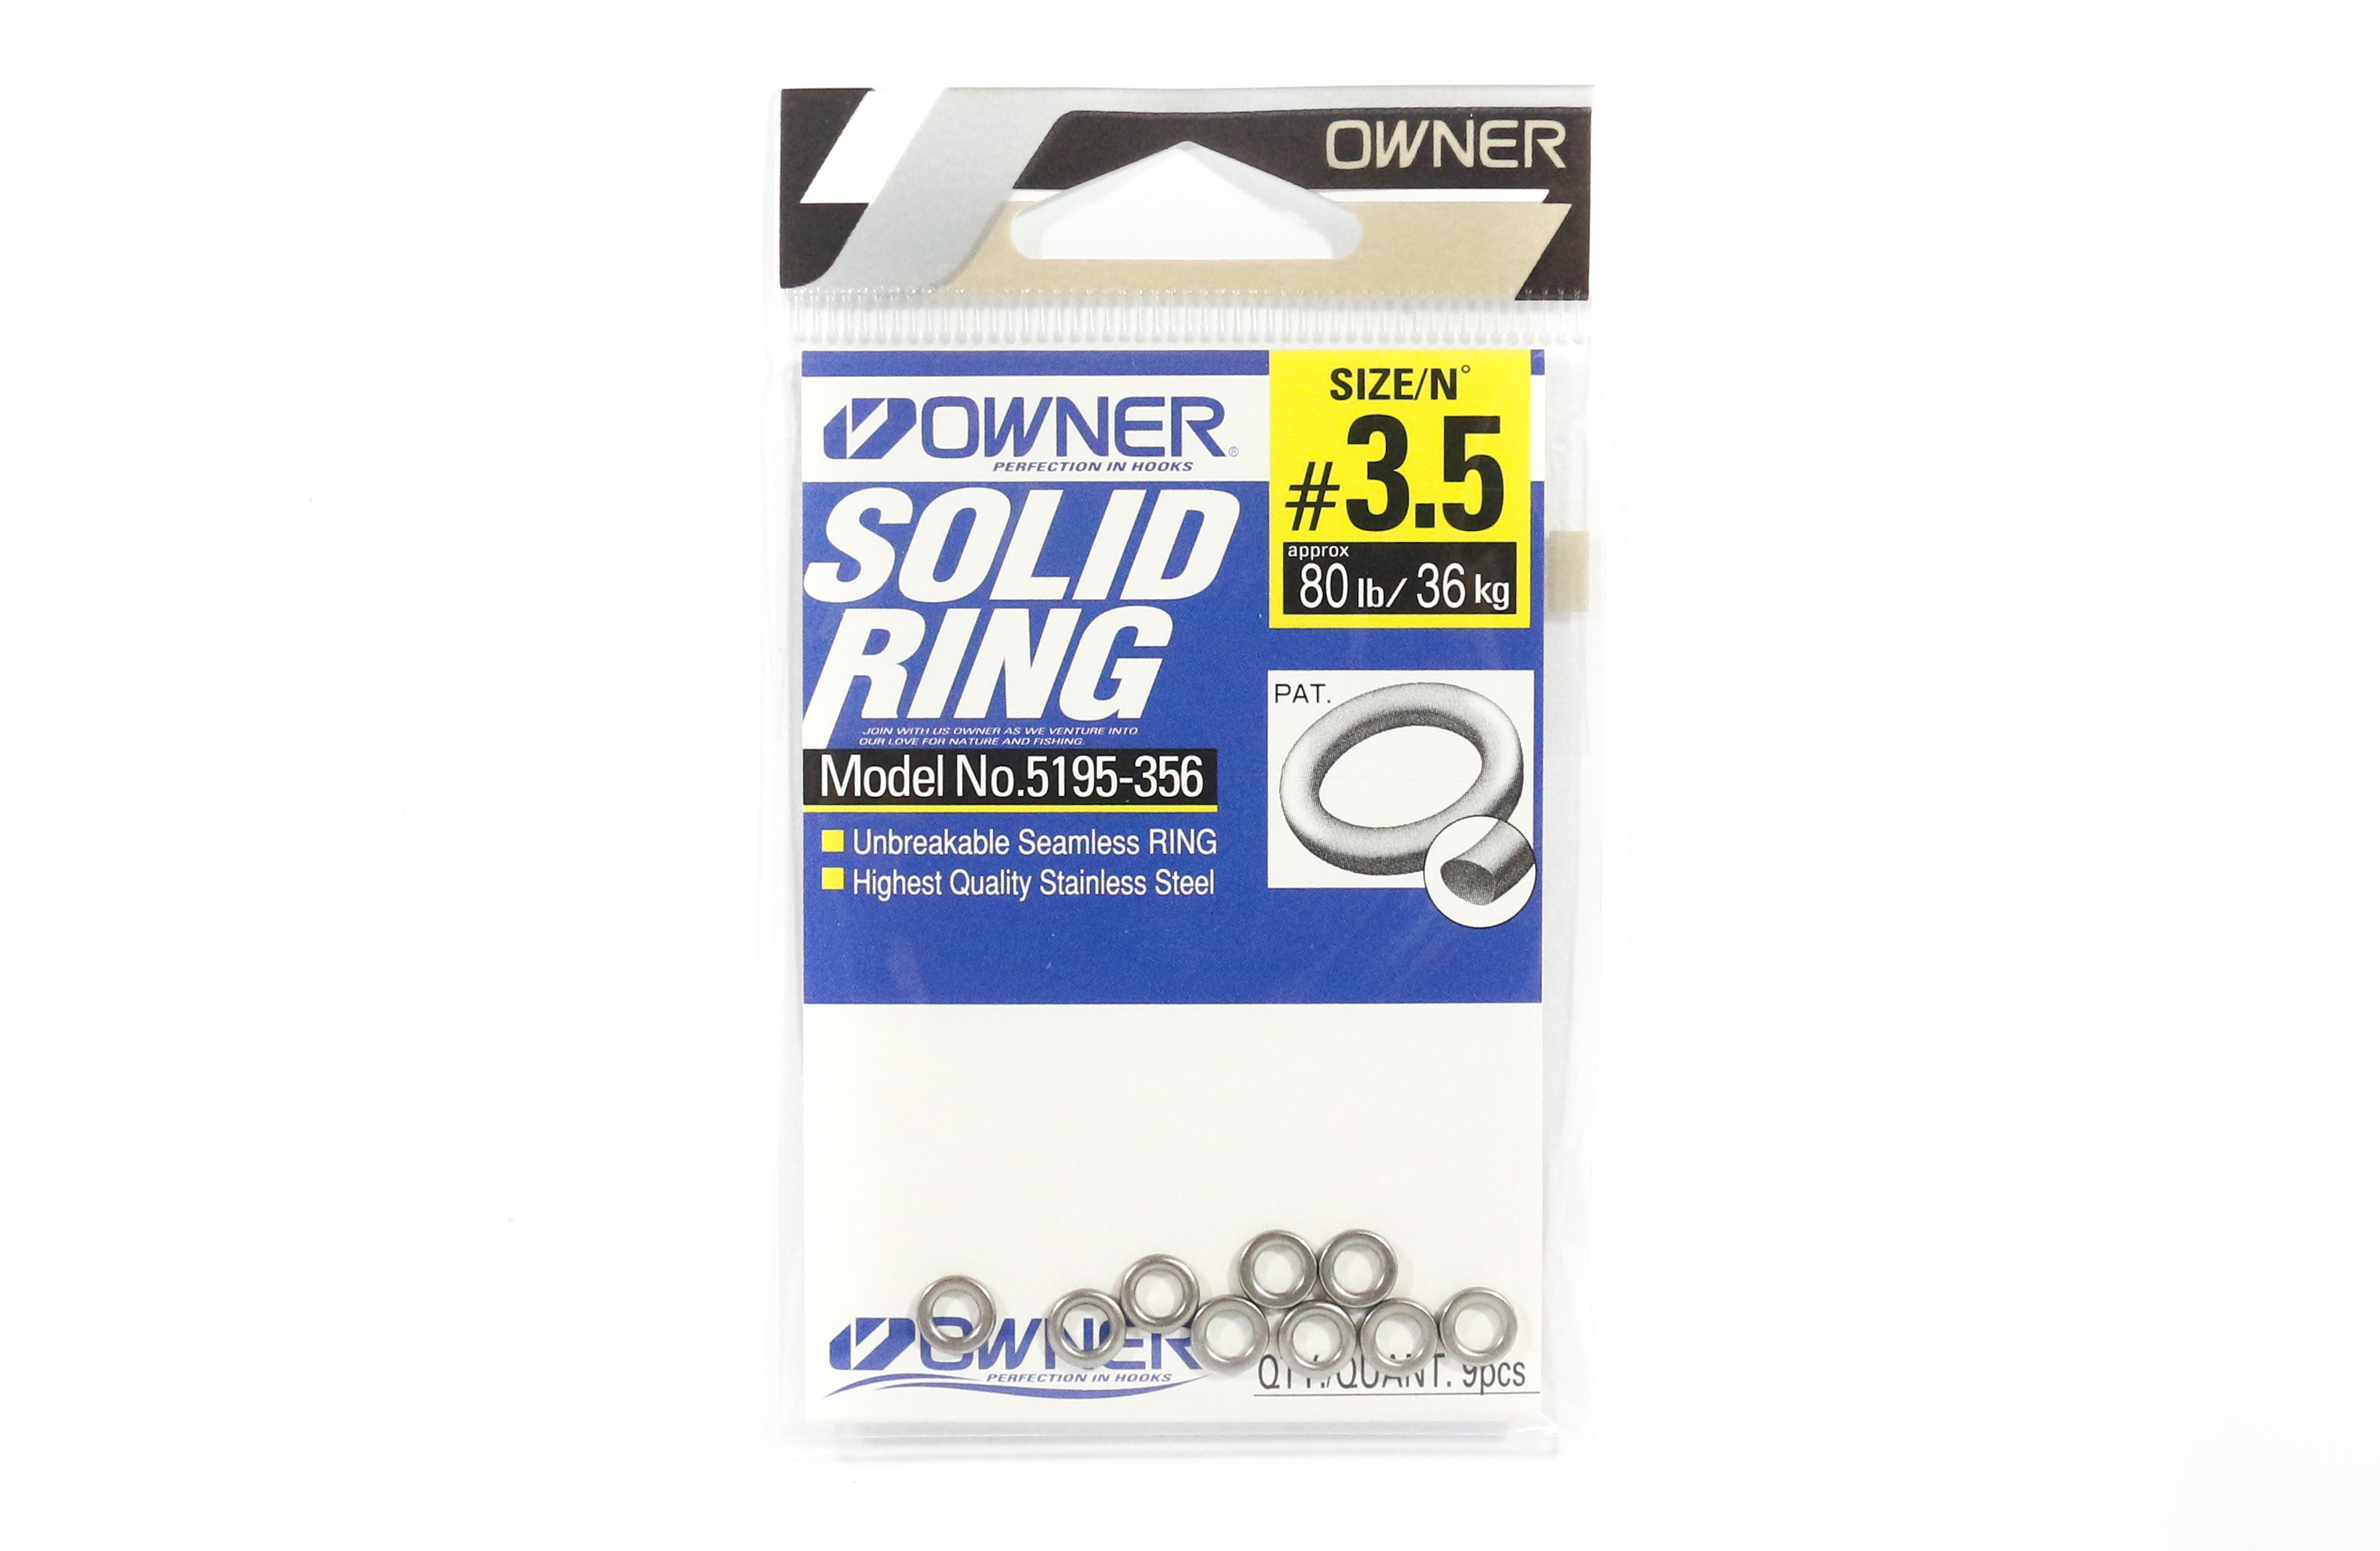 Kahara Solid Ring Stainless Steel Size 3.5-60lb 5688